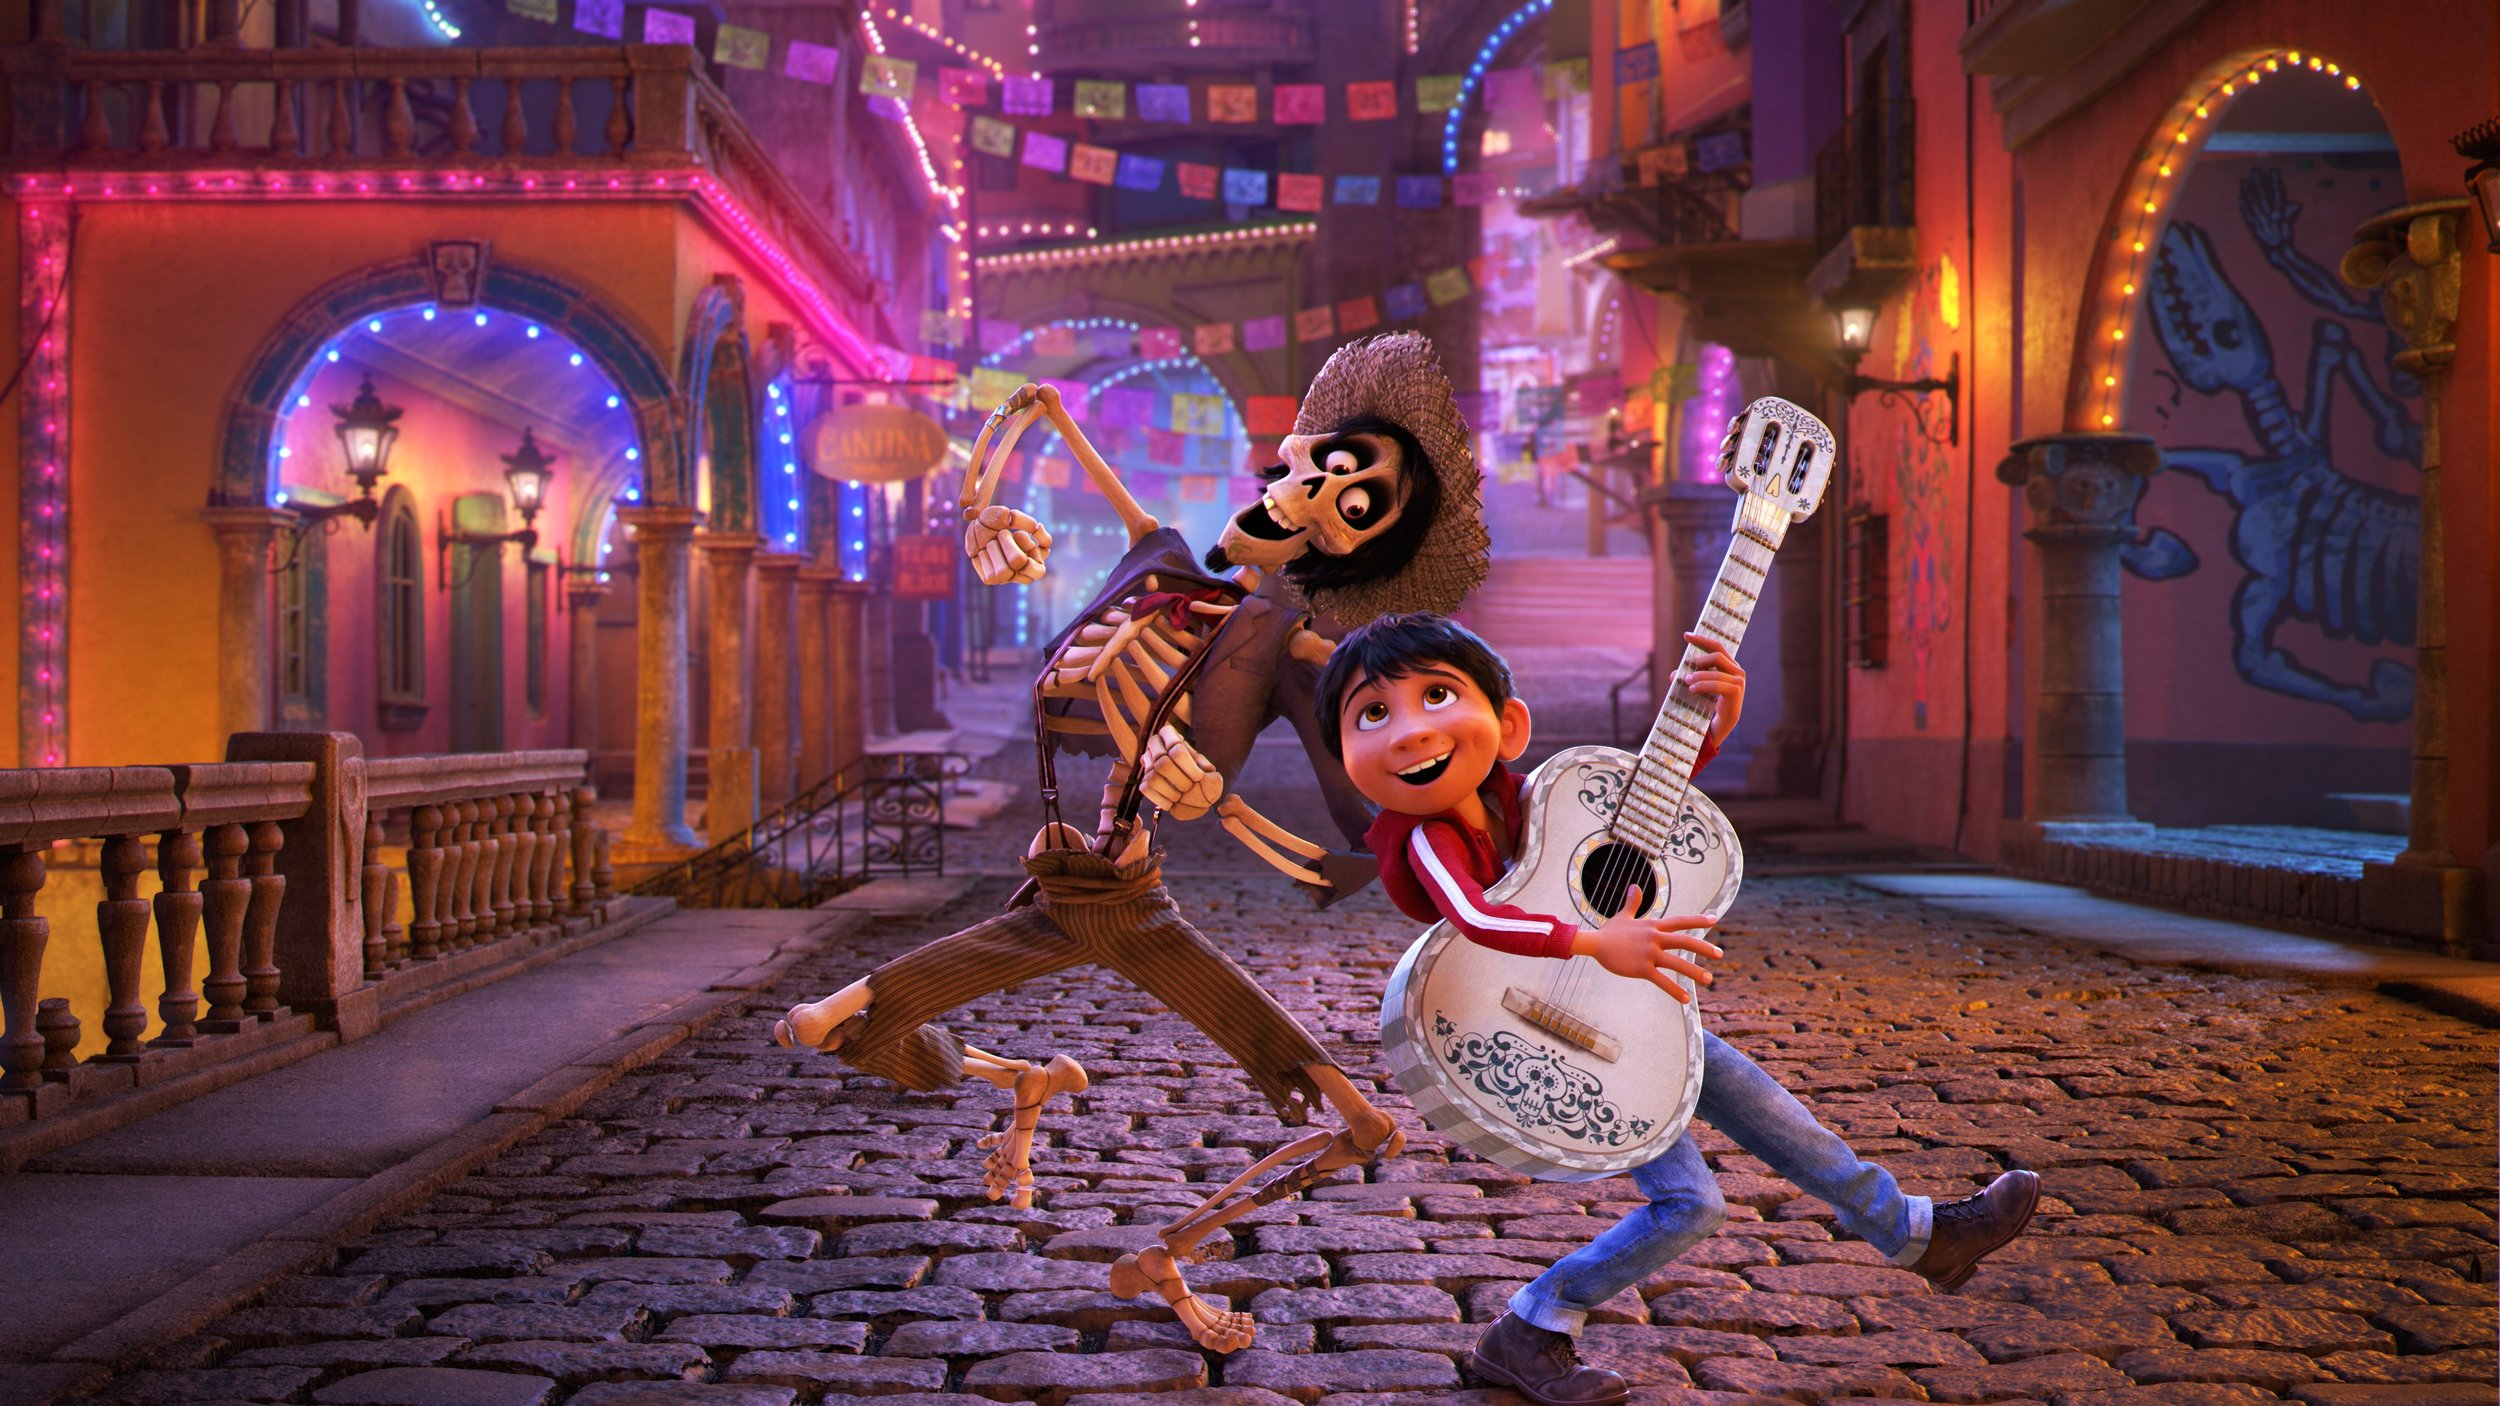 "#4 Coco - With perfectly timed Spanglish and an entirely Latino voice cast, Pixar's Coco broke the mold, celebrating Mexican culture with its bright colors and beautifully constructed animation. We fall in love with the Riviera family, as Miguel travels through the Land of the Dead to discover a love deeper than his love of guitar: the love of family. A children's movie, yes. But Coco reaches beyond the superficial as we watch Miguel and his great, great grandparents (some of whom are already dead) learn through each other to discover their true selves. To move away from the ""rip-off"" of culture that was The Book of Life, Pixar's Coco brings us characters that are human and real, who have a deep culture but also dynamic and emotional actions, giving young children (and adults) a bright celebration of what it really means to have representation."